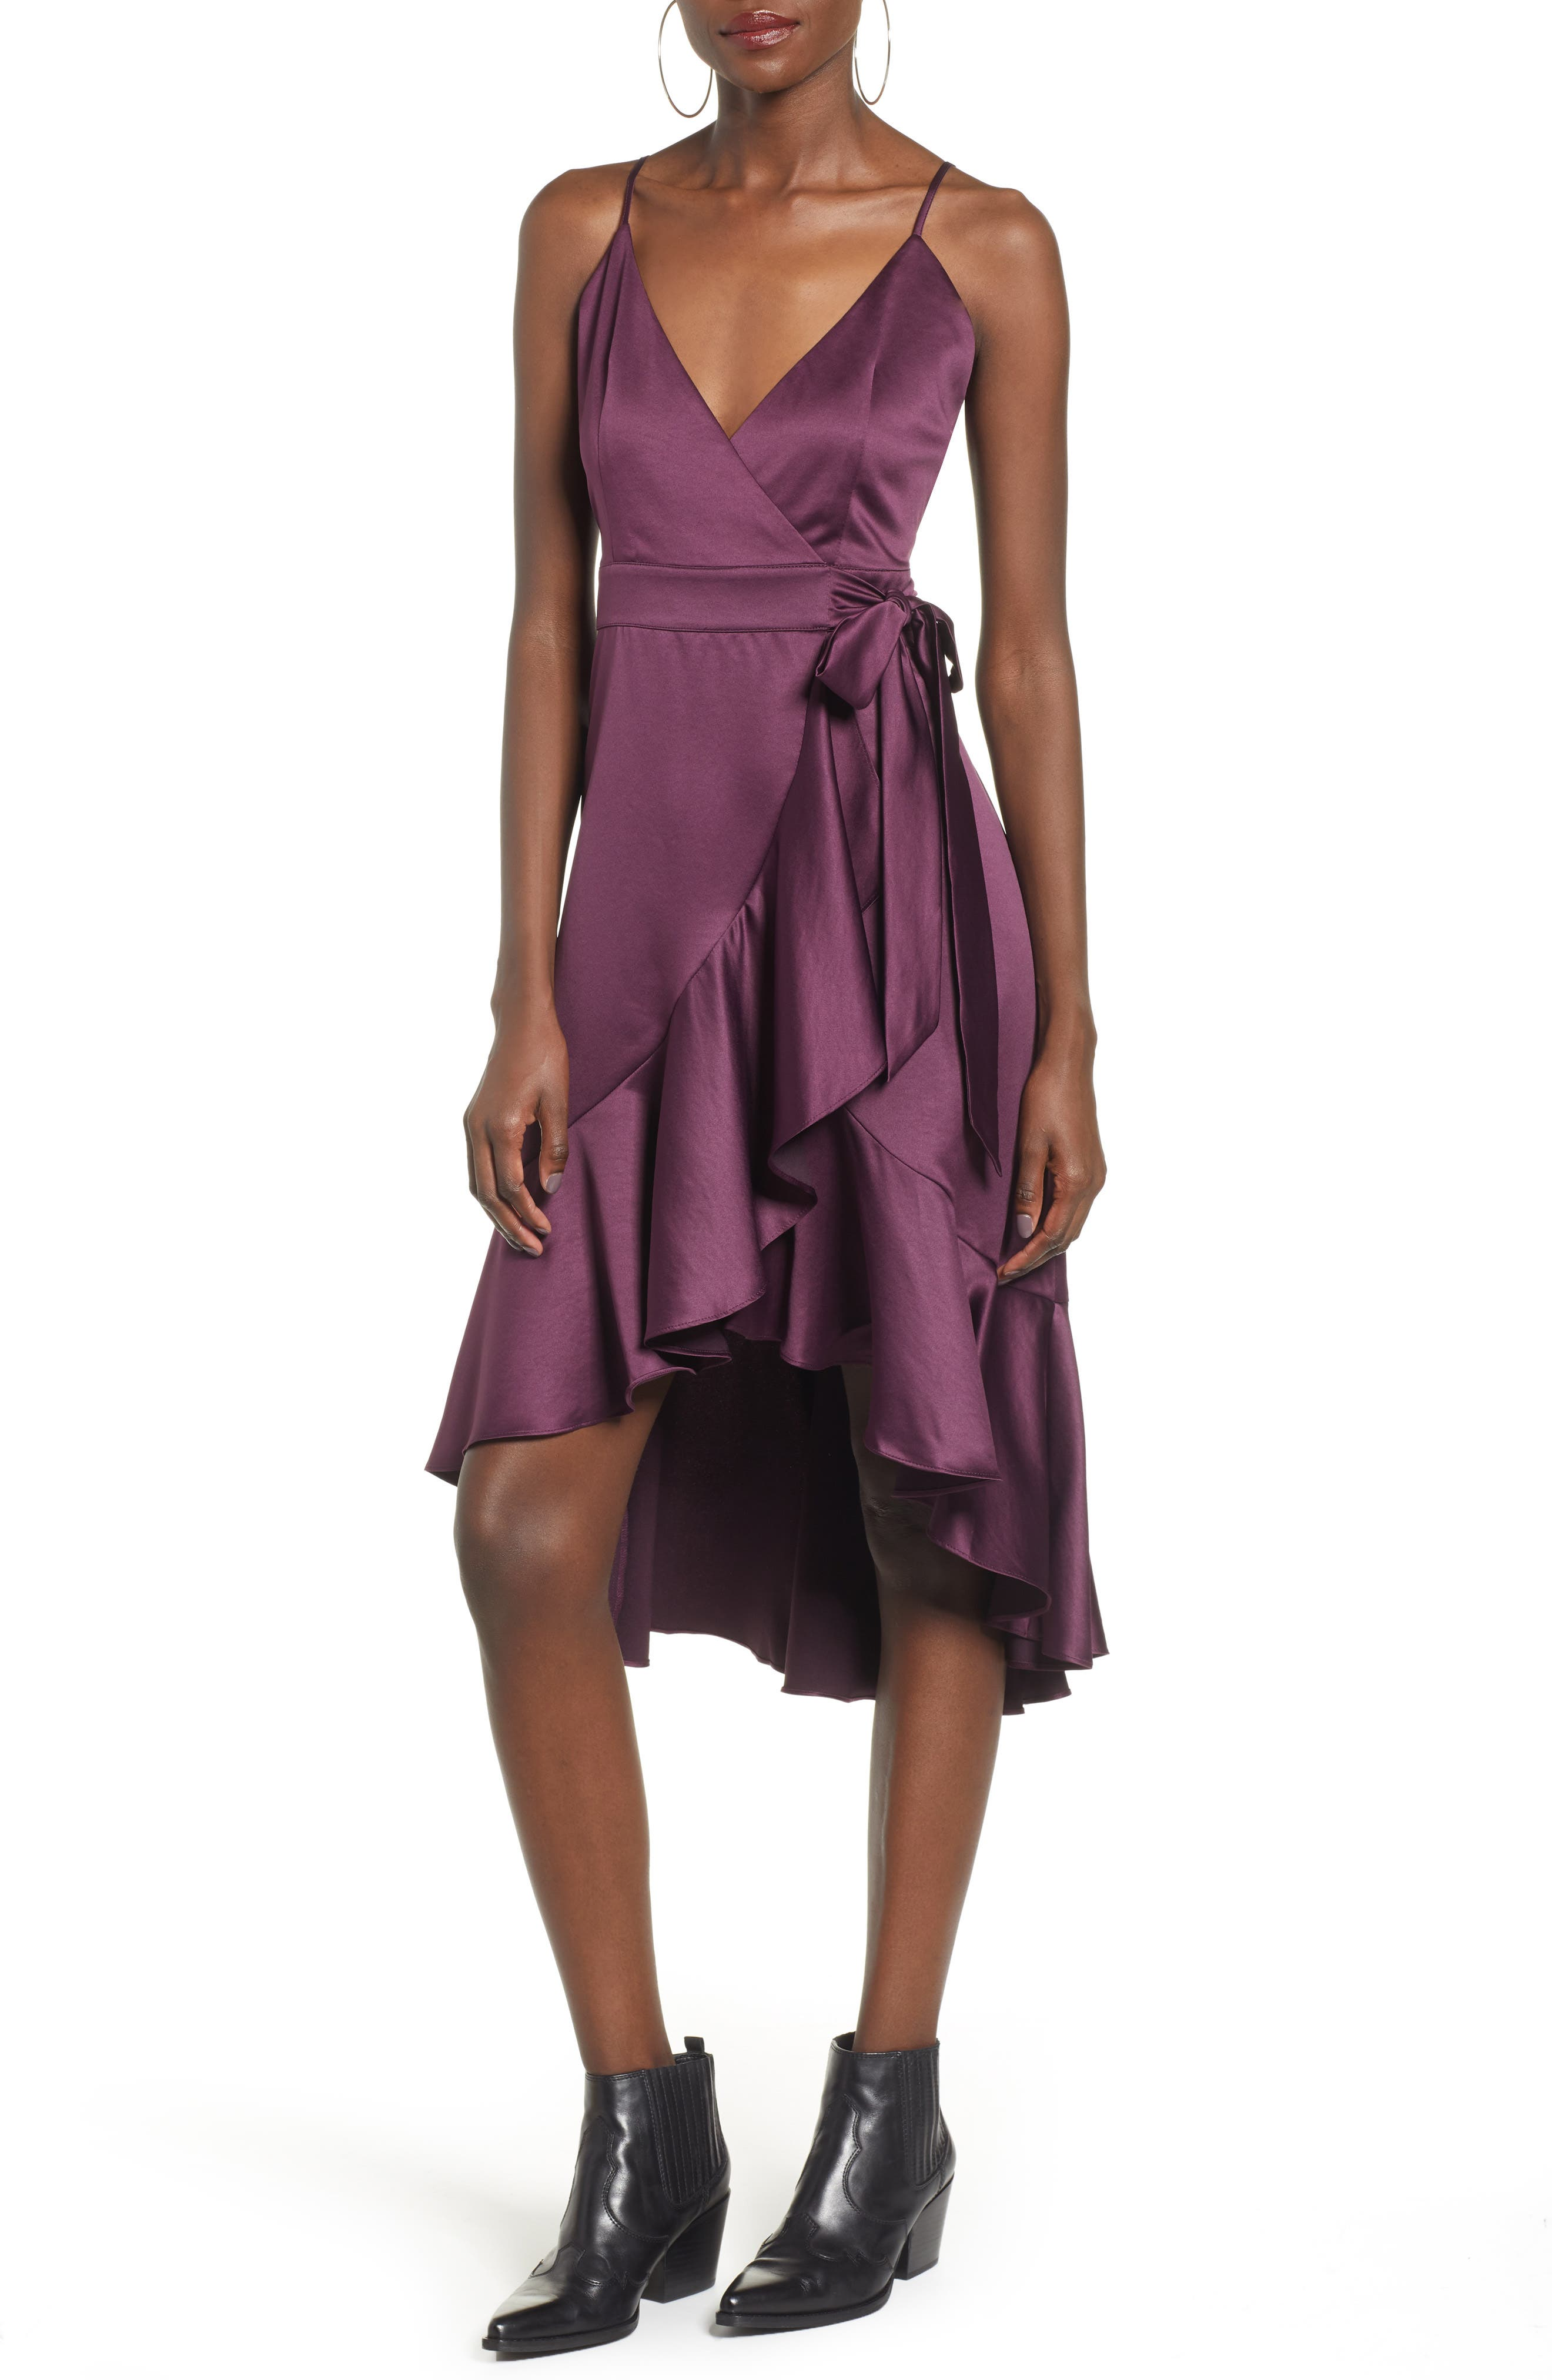 BAND OF GYPSIES Payton Ruffled High/Low Dress in Plum